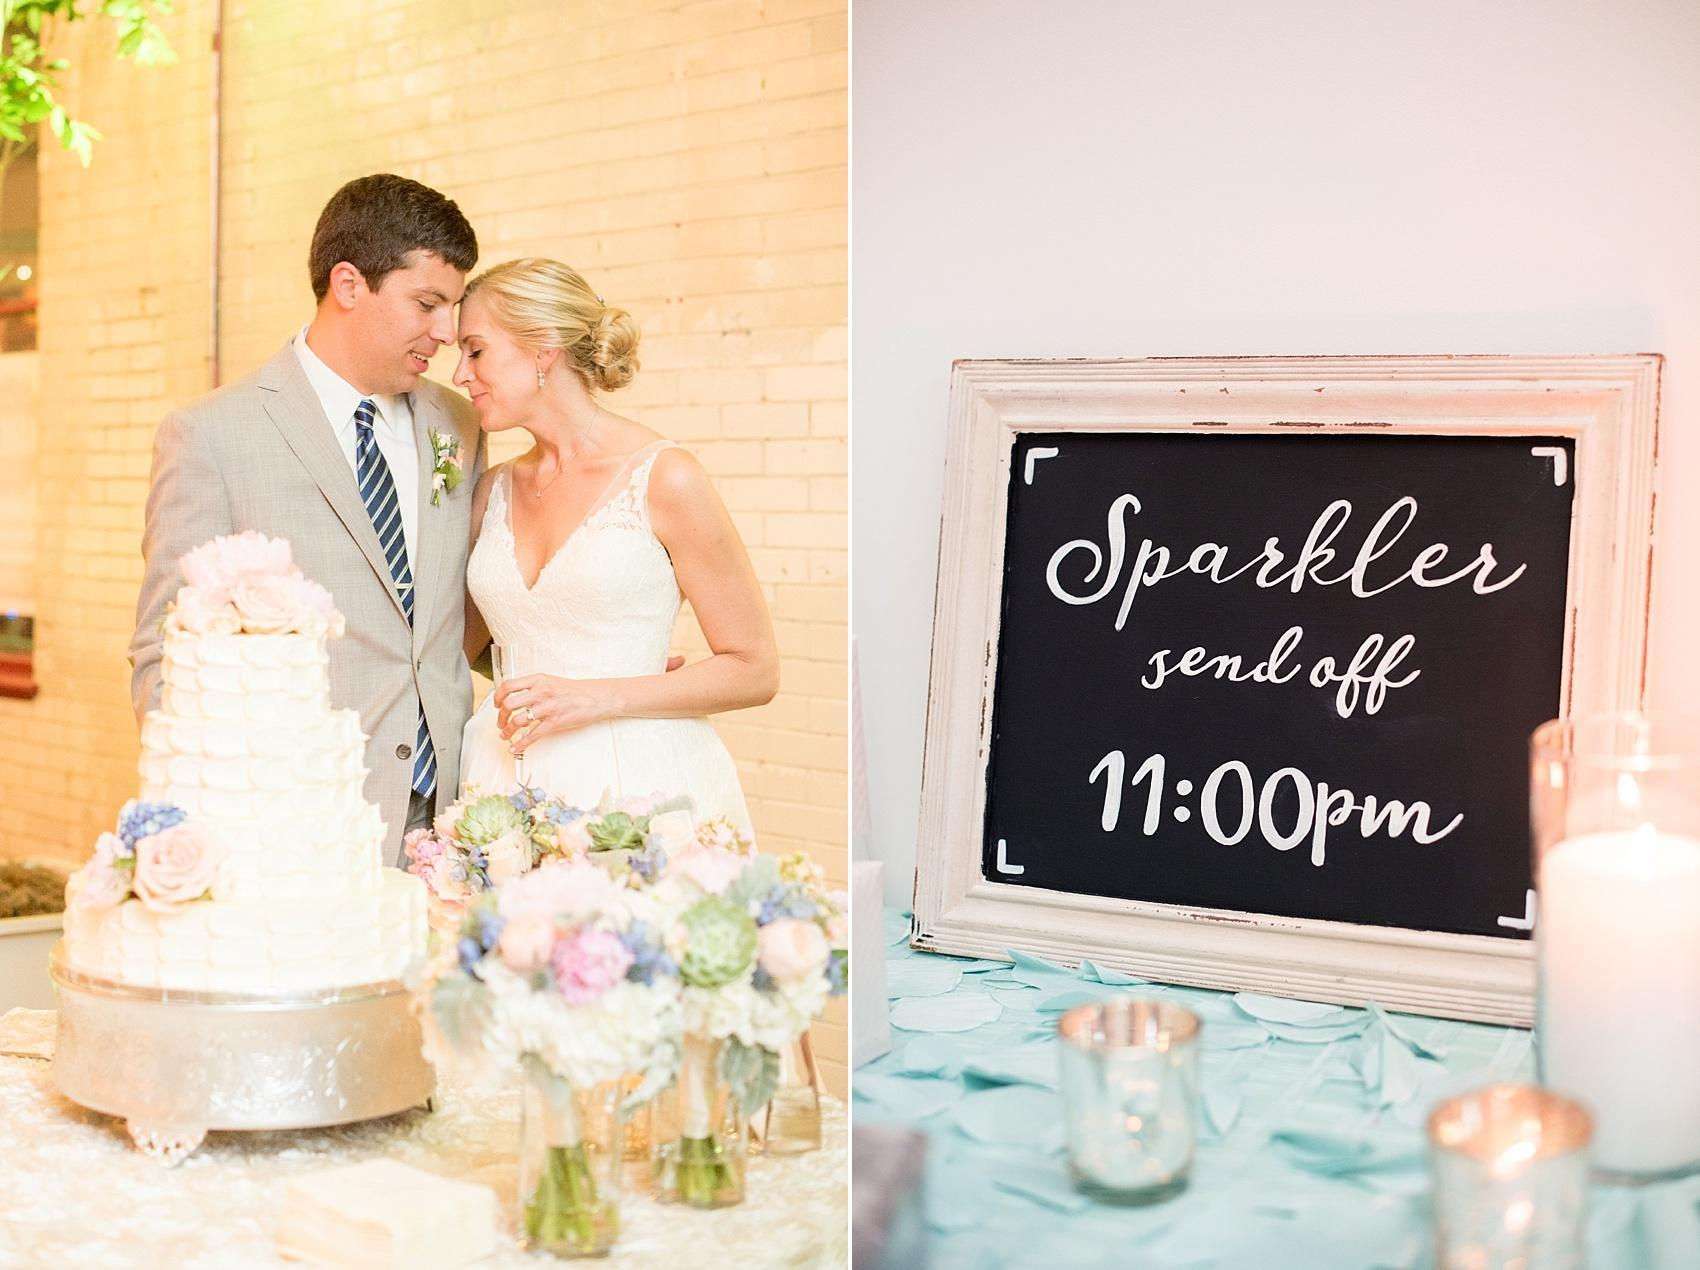 Mikkel Paige Photography photos of a wedding in downtown Raleigh at Market Hall, North Carolina. Cake cutting with a buttercream cake and chalkboard sparkler sendoff sign.